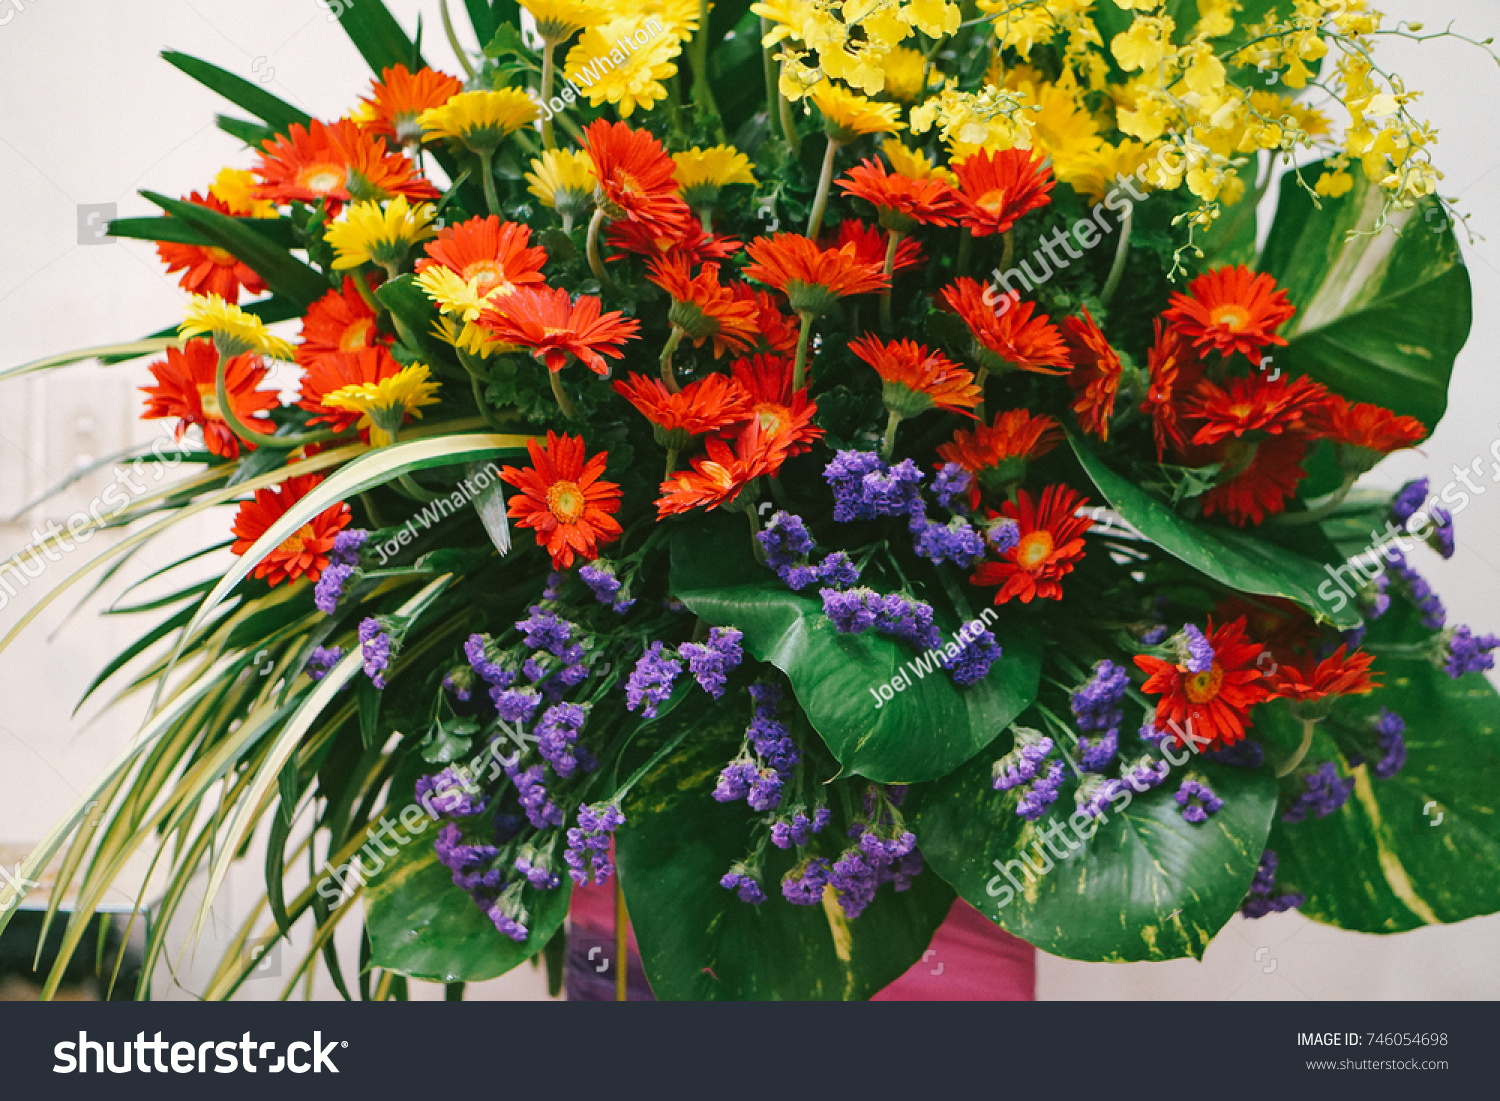 Mixed Flower Bouquet Flower Design Flower Stock Photo (Royalty Free ...